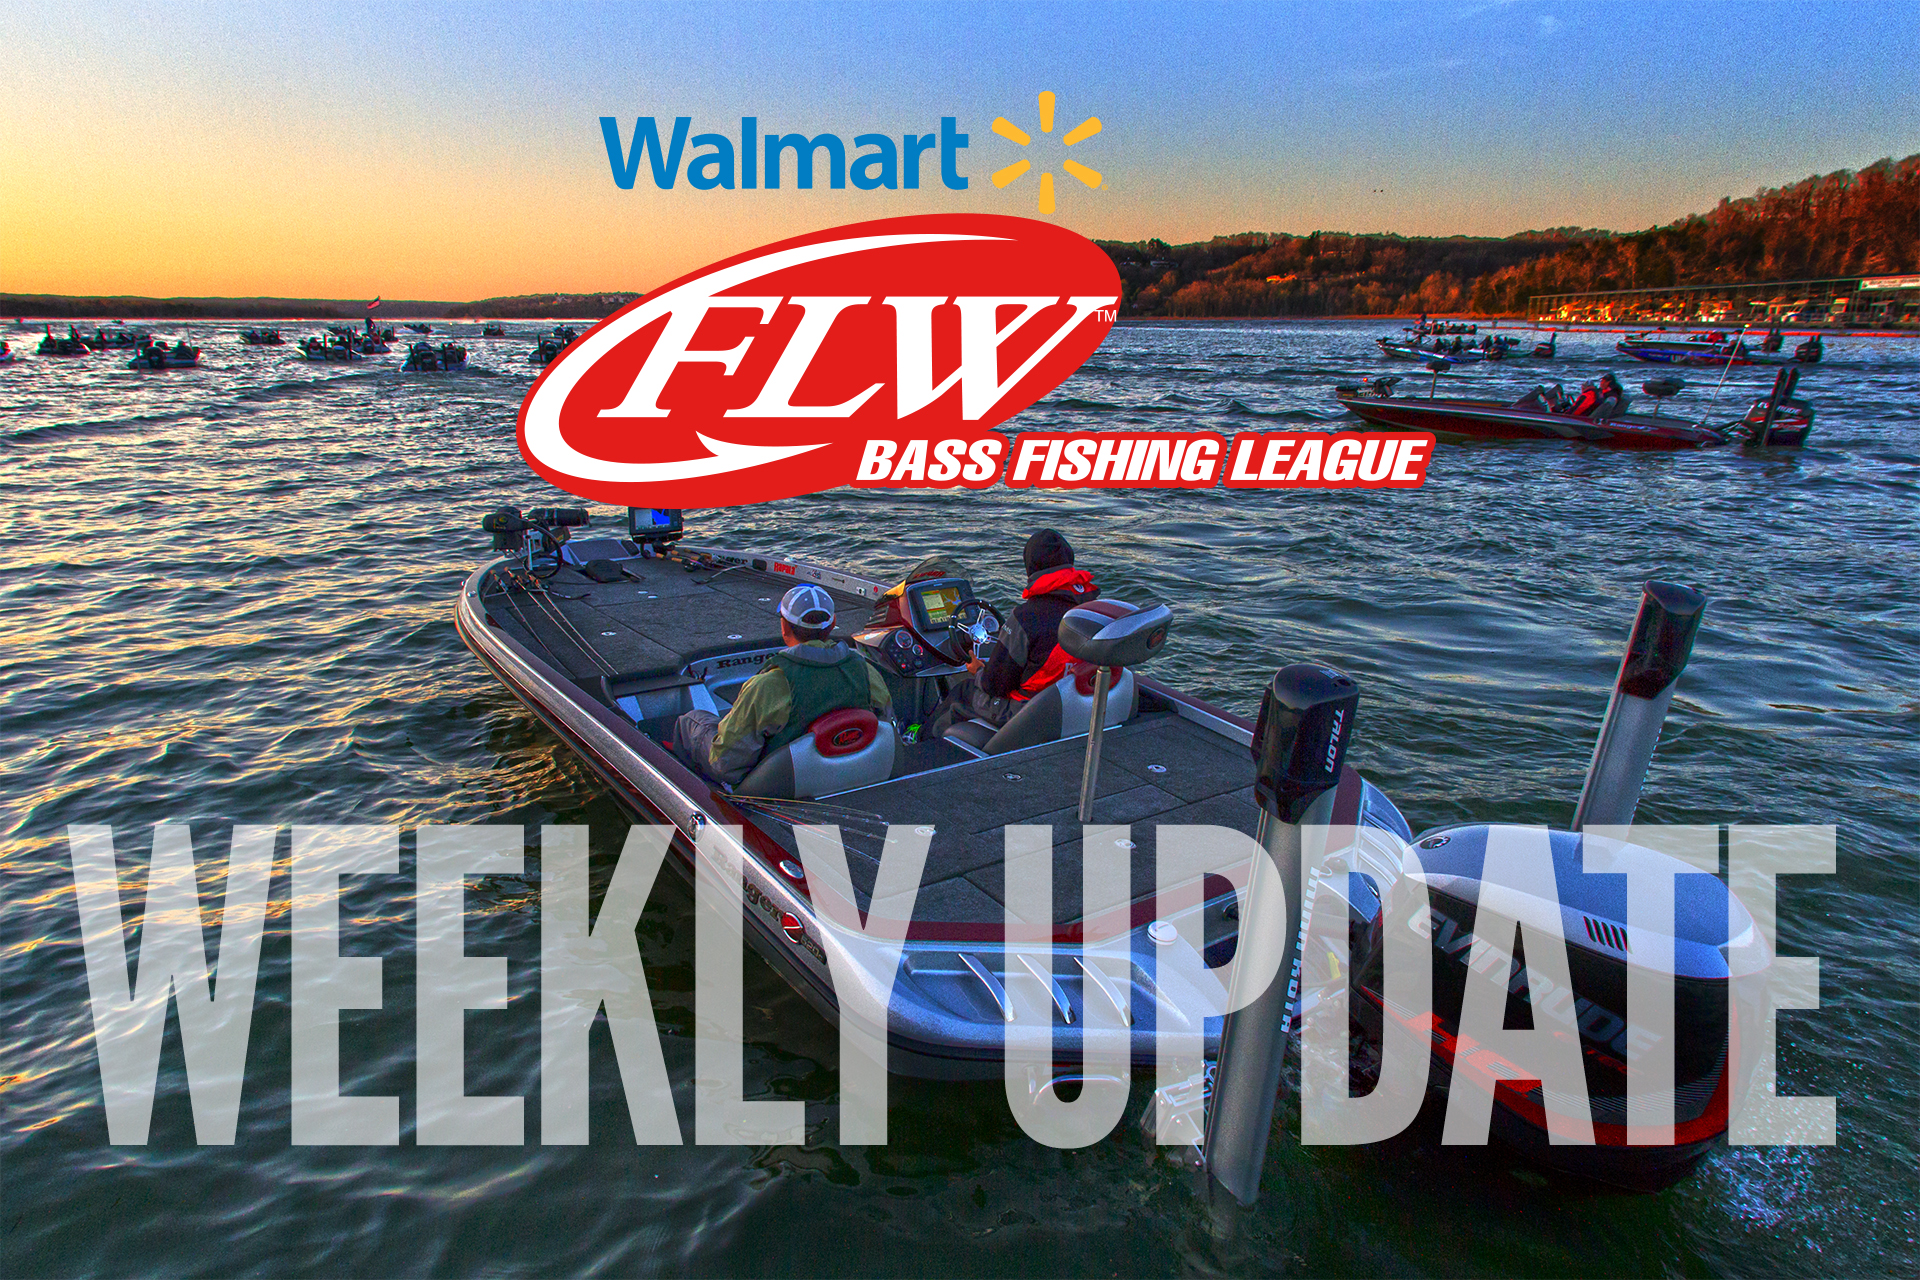 BFL Weekly Update - October 24-25